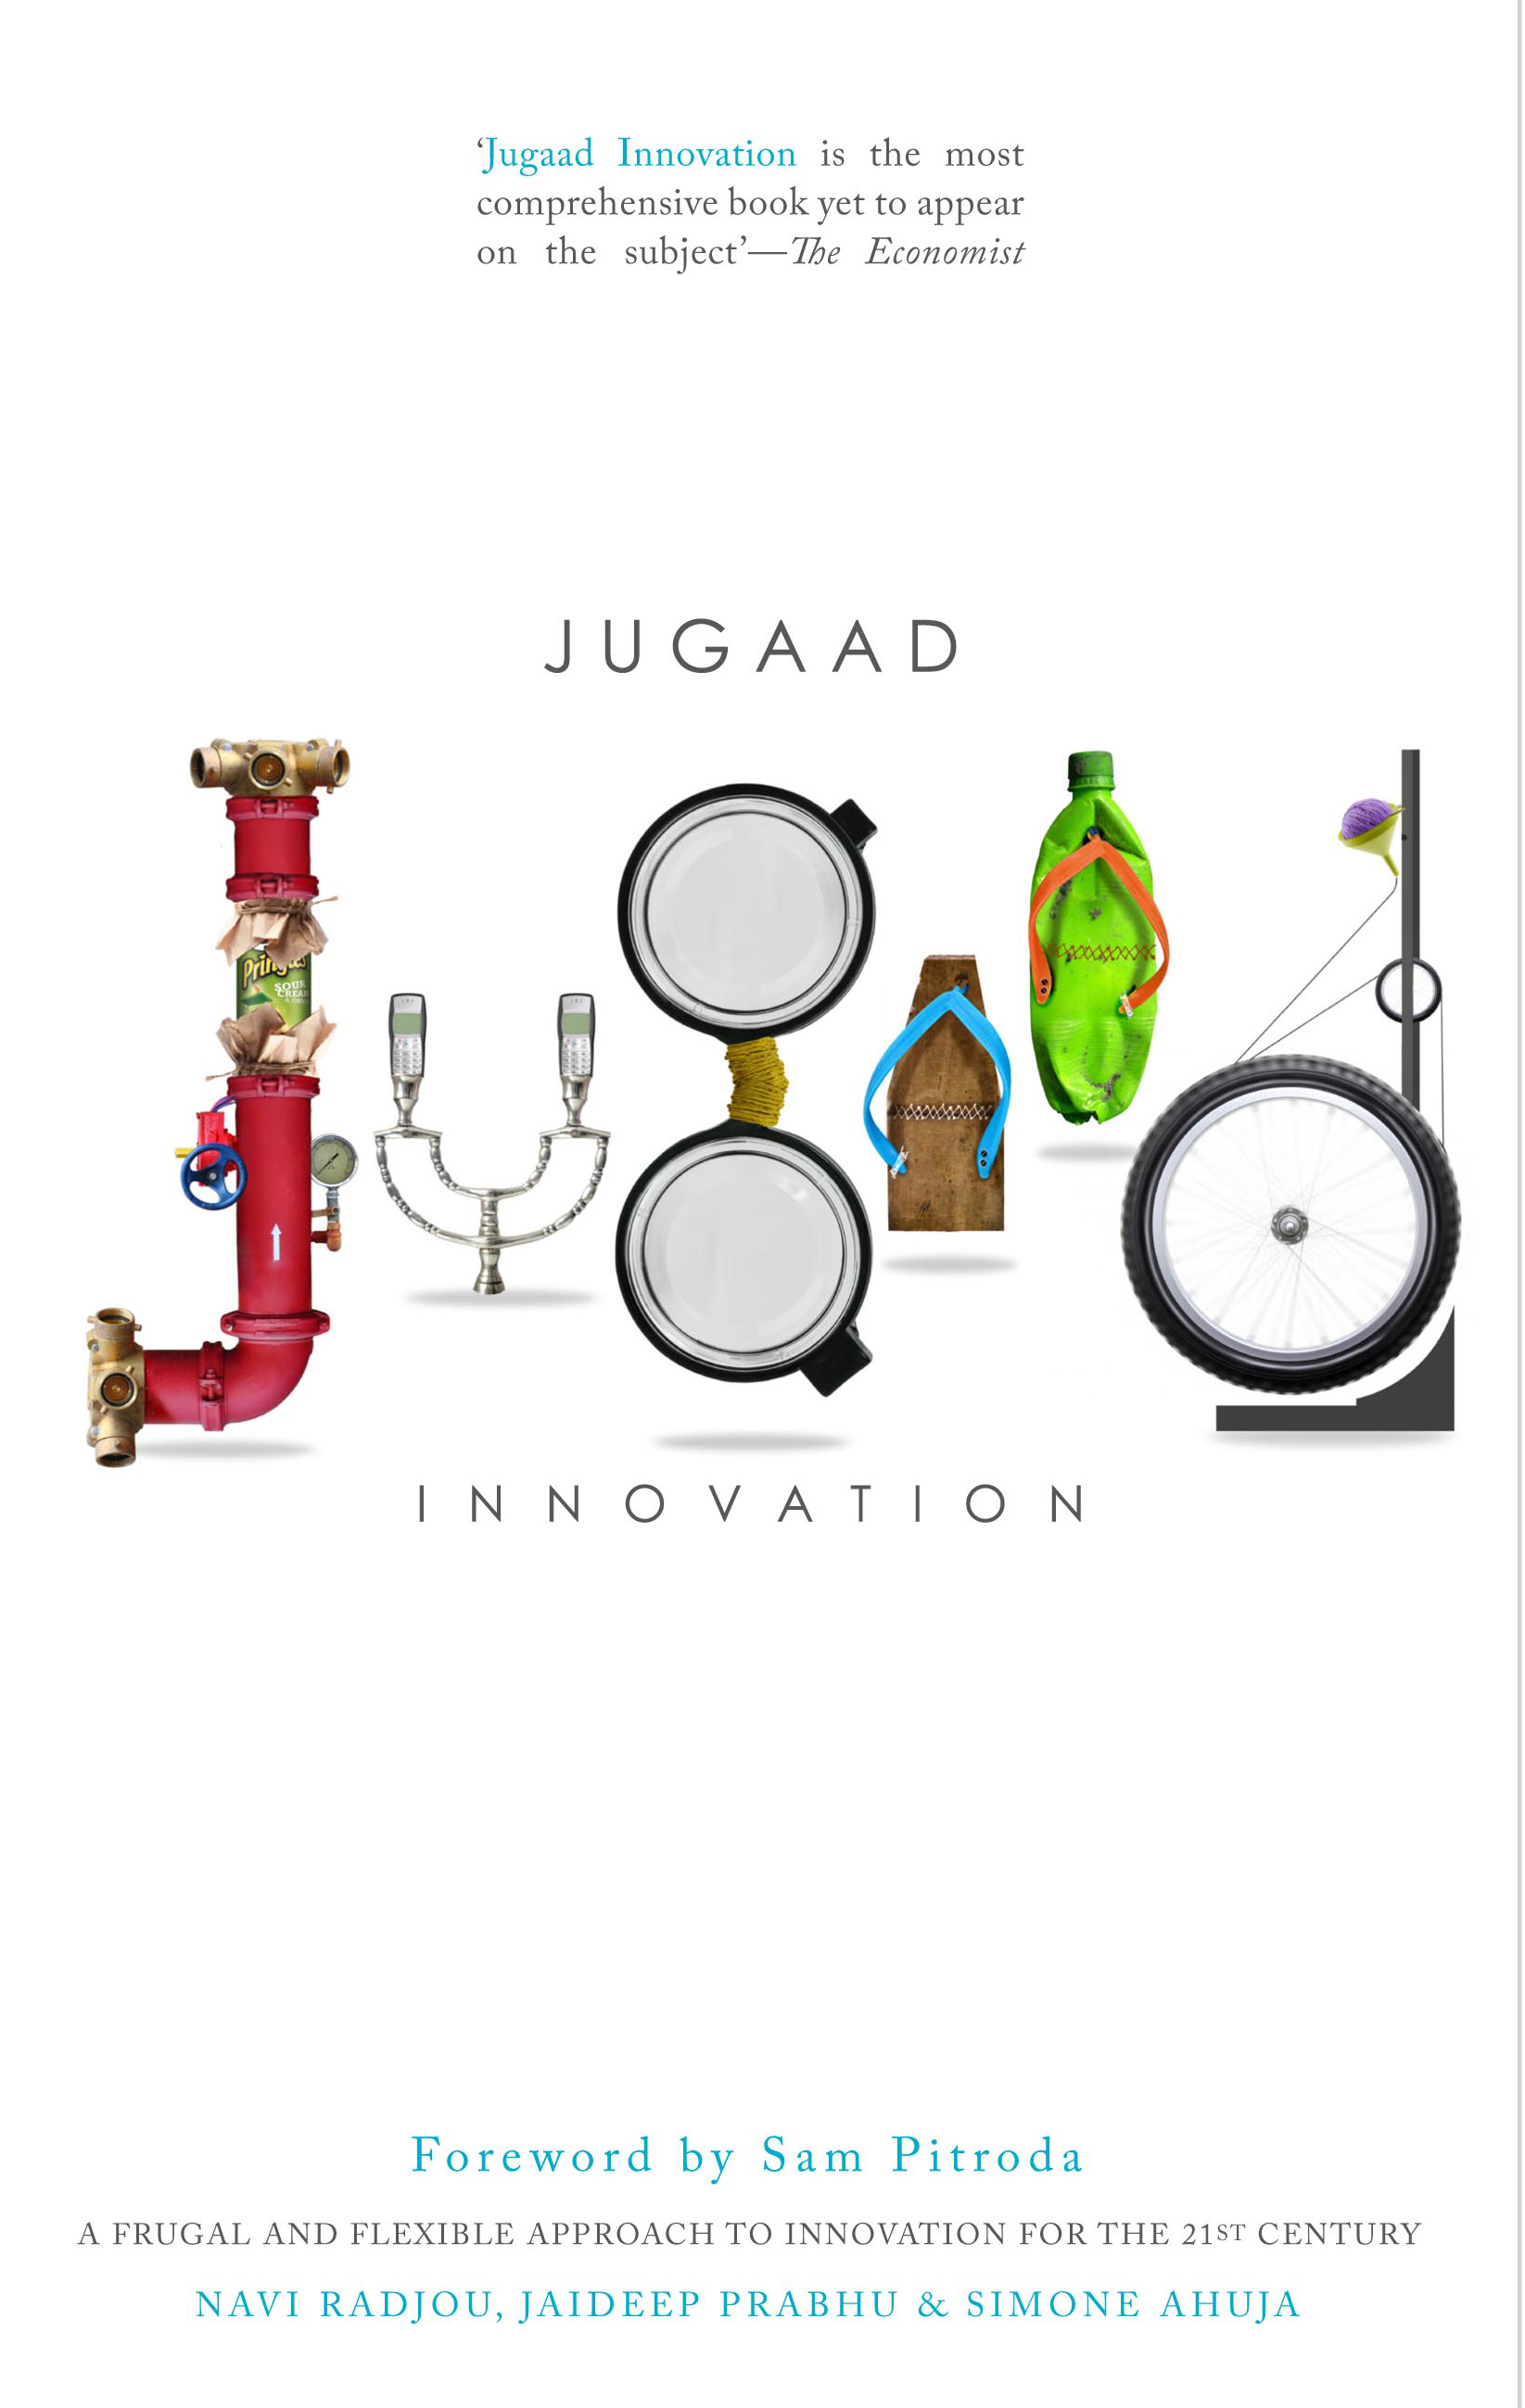 JUGAAD, Book Cover